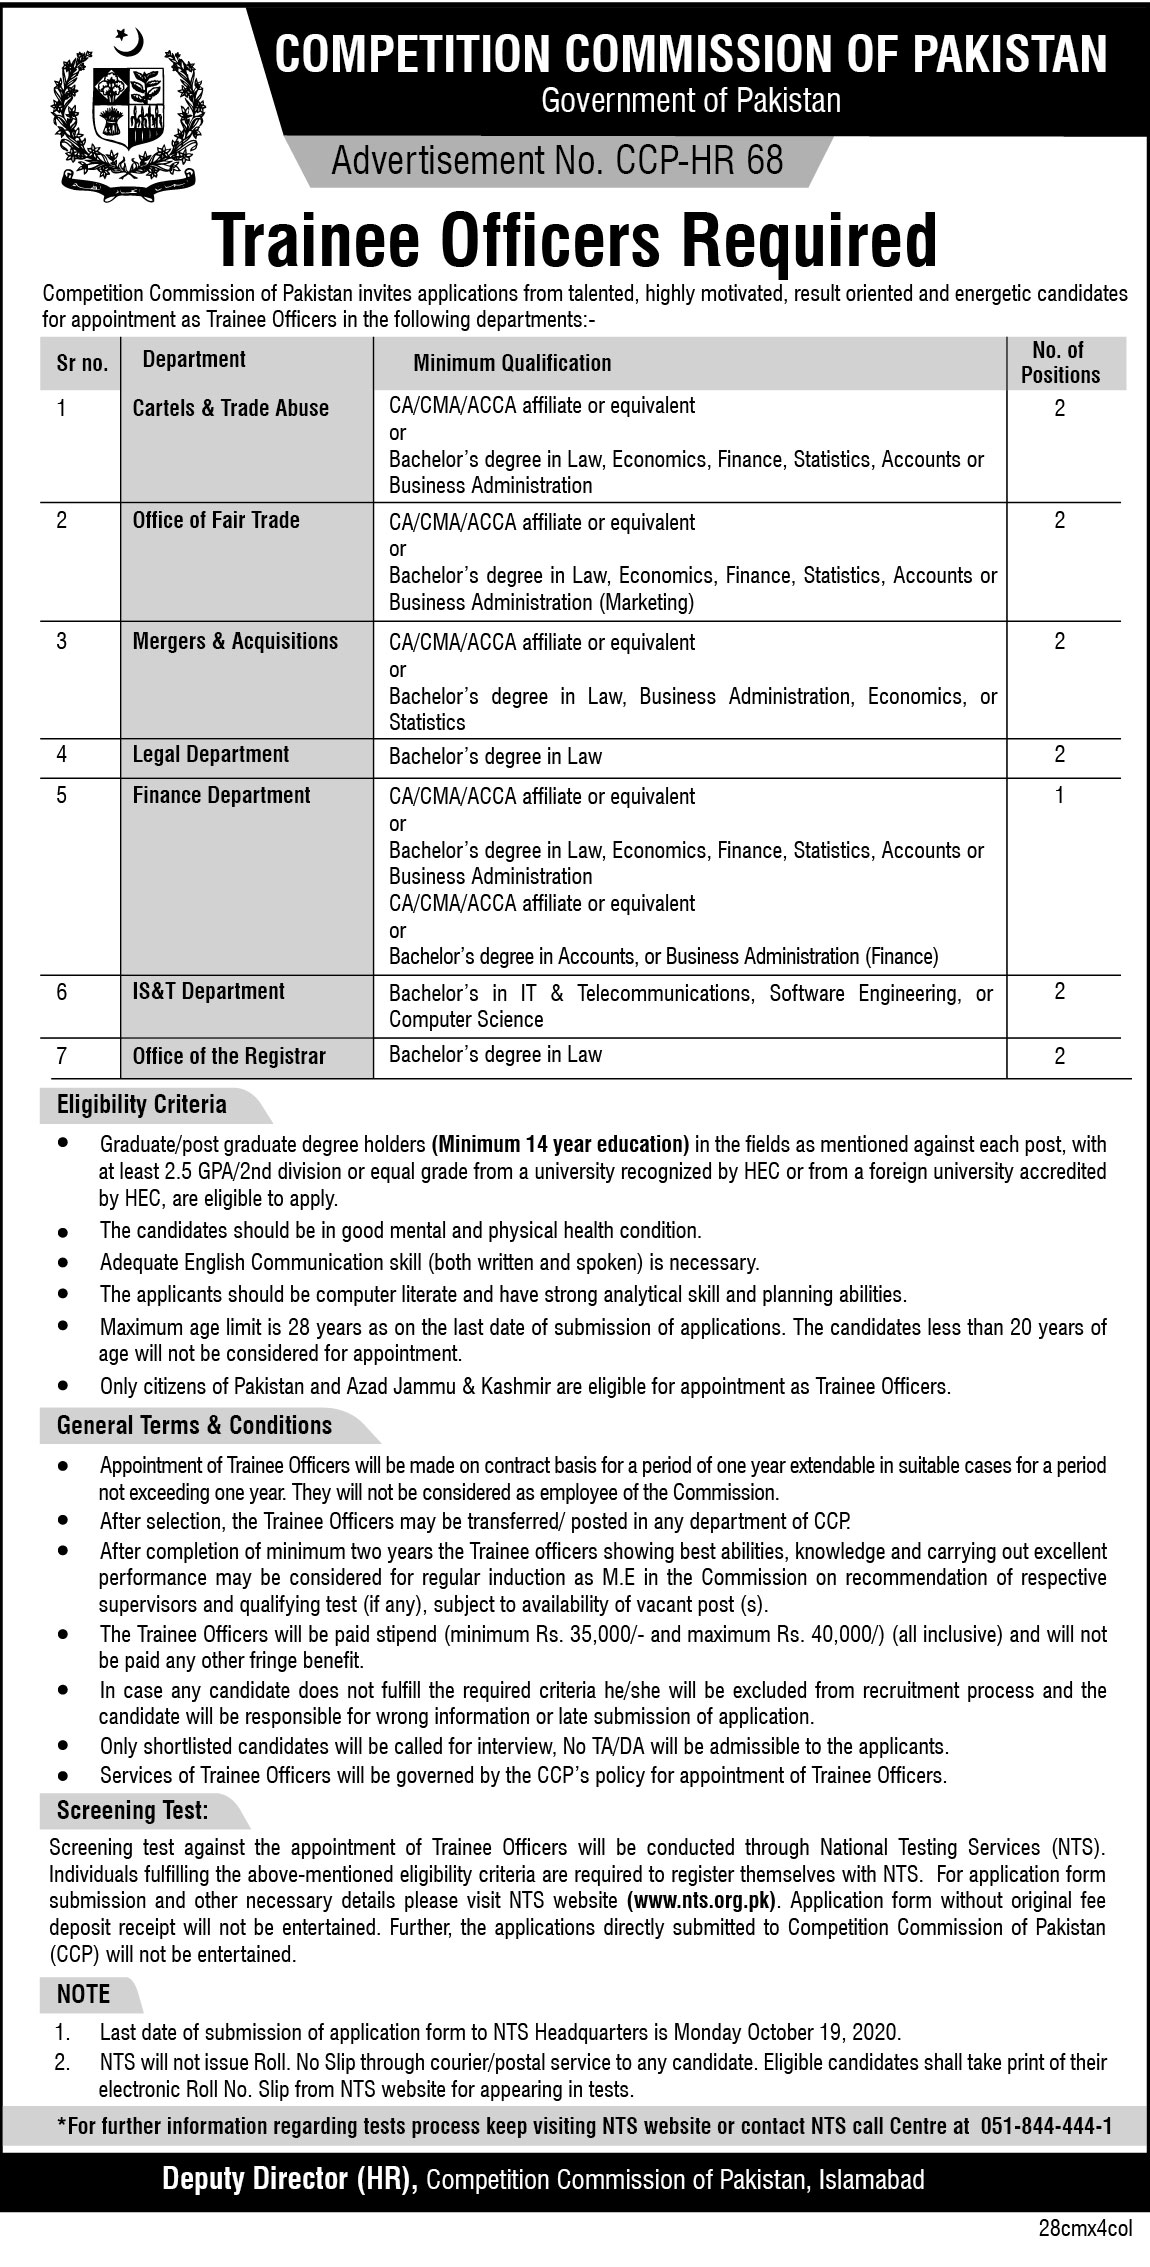 Competition Commission Of Pakistan Trainee Officers Jobs NTS Roll No Slip